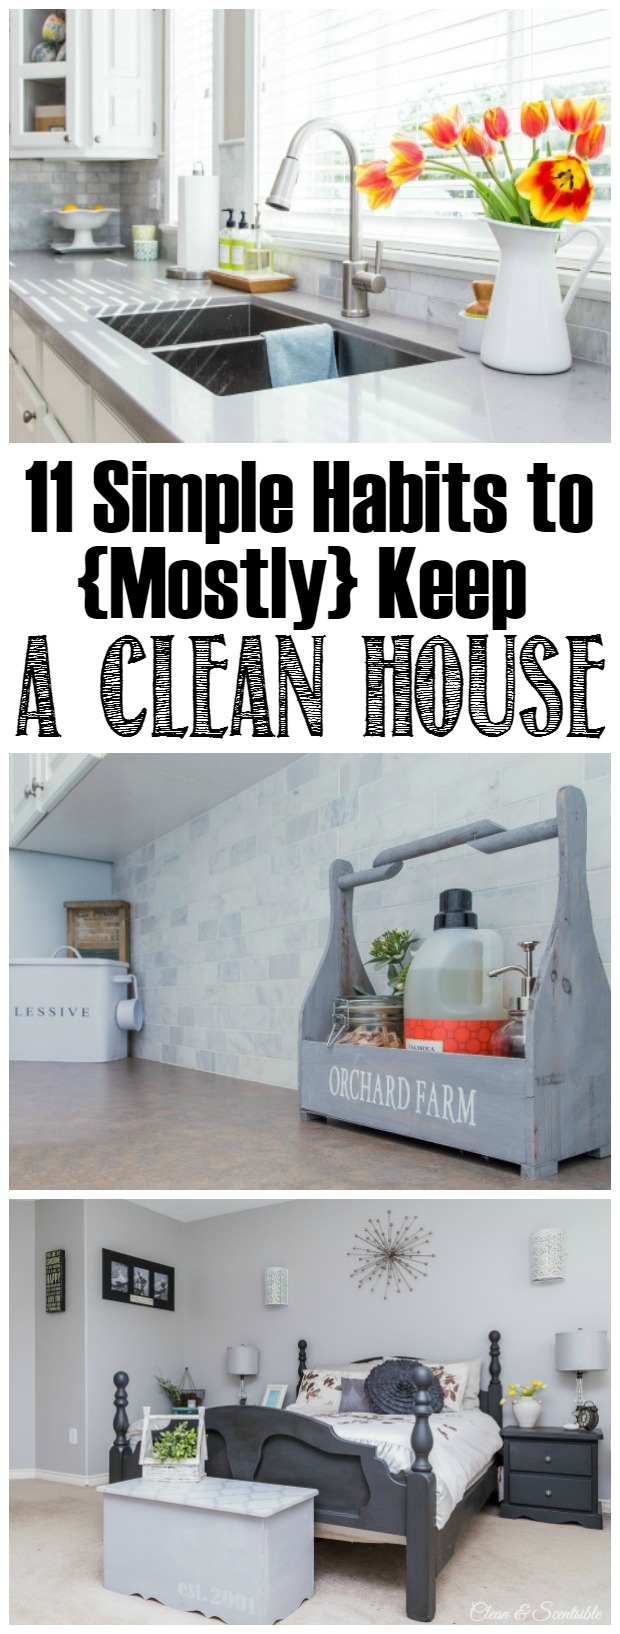 11 Daily Habits to Keep a House Clean and Tidy - Clean and Scentsible